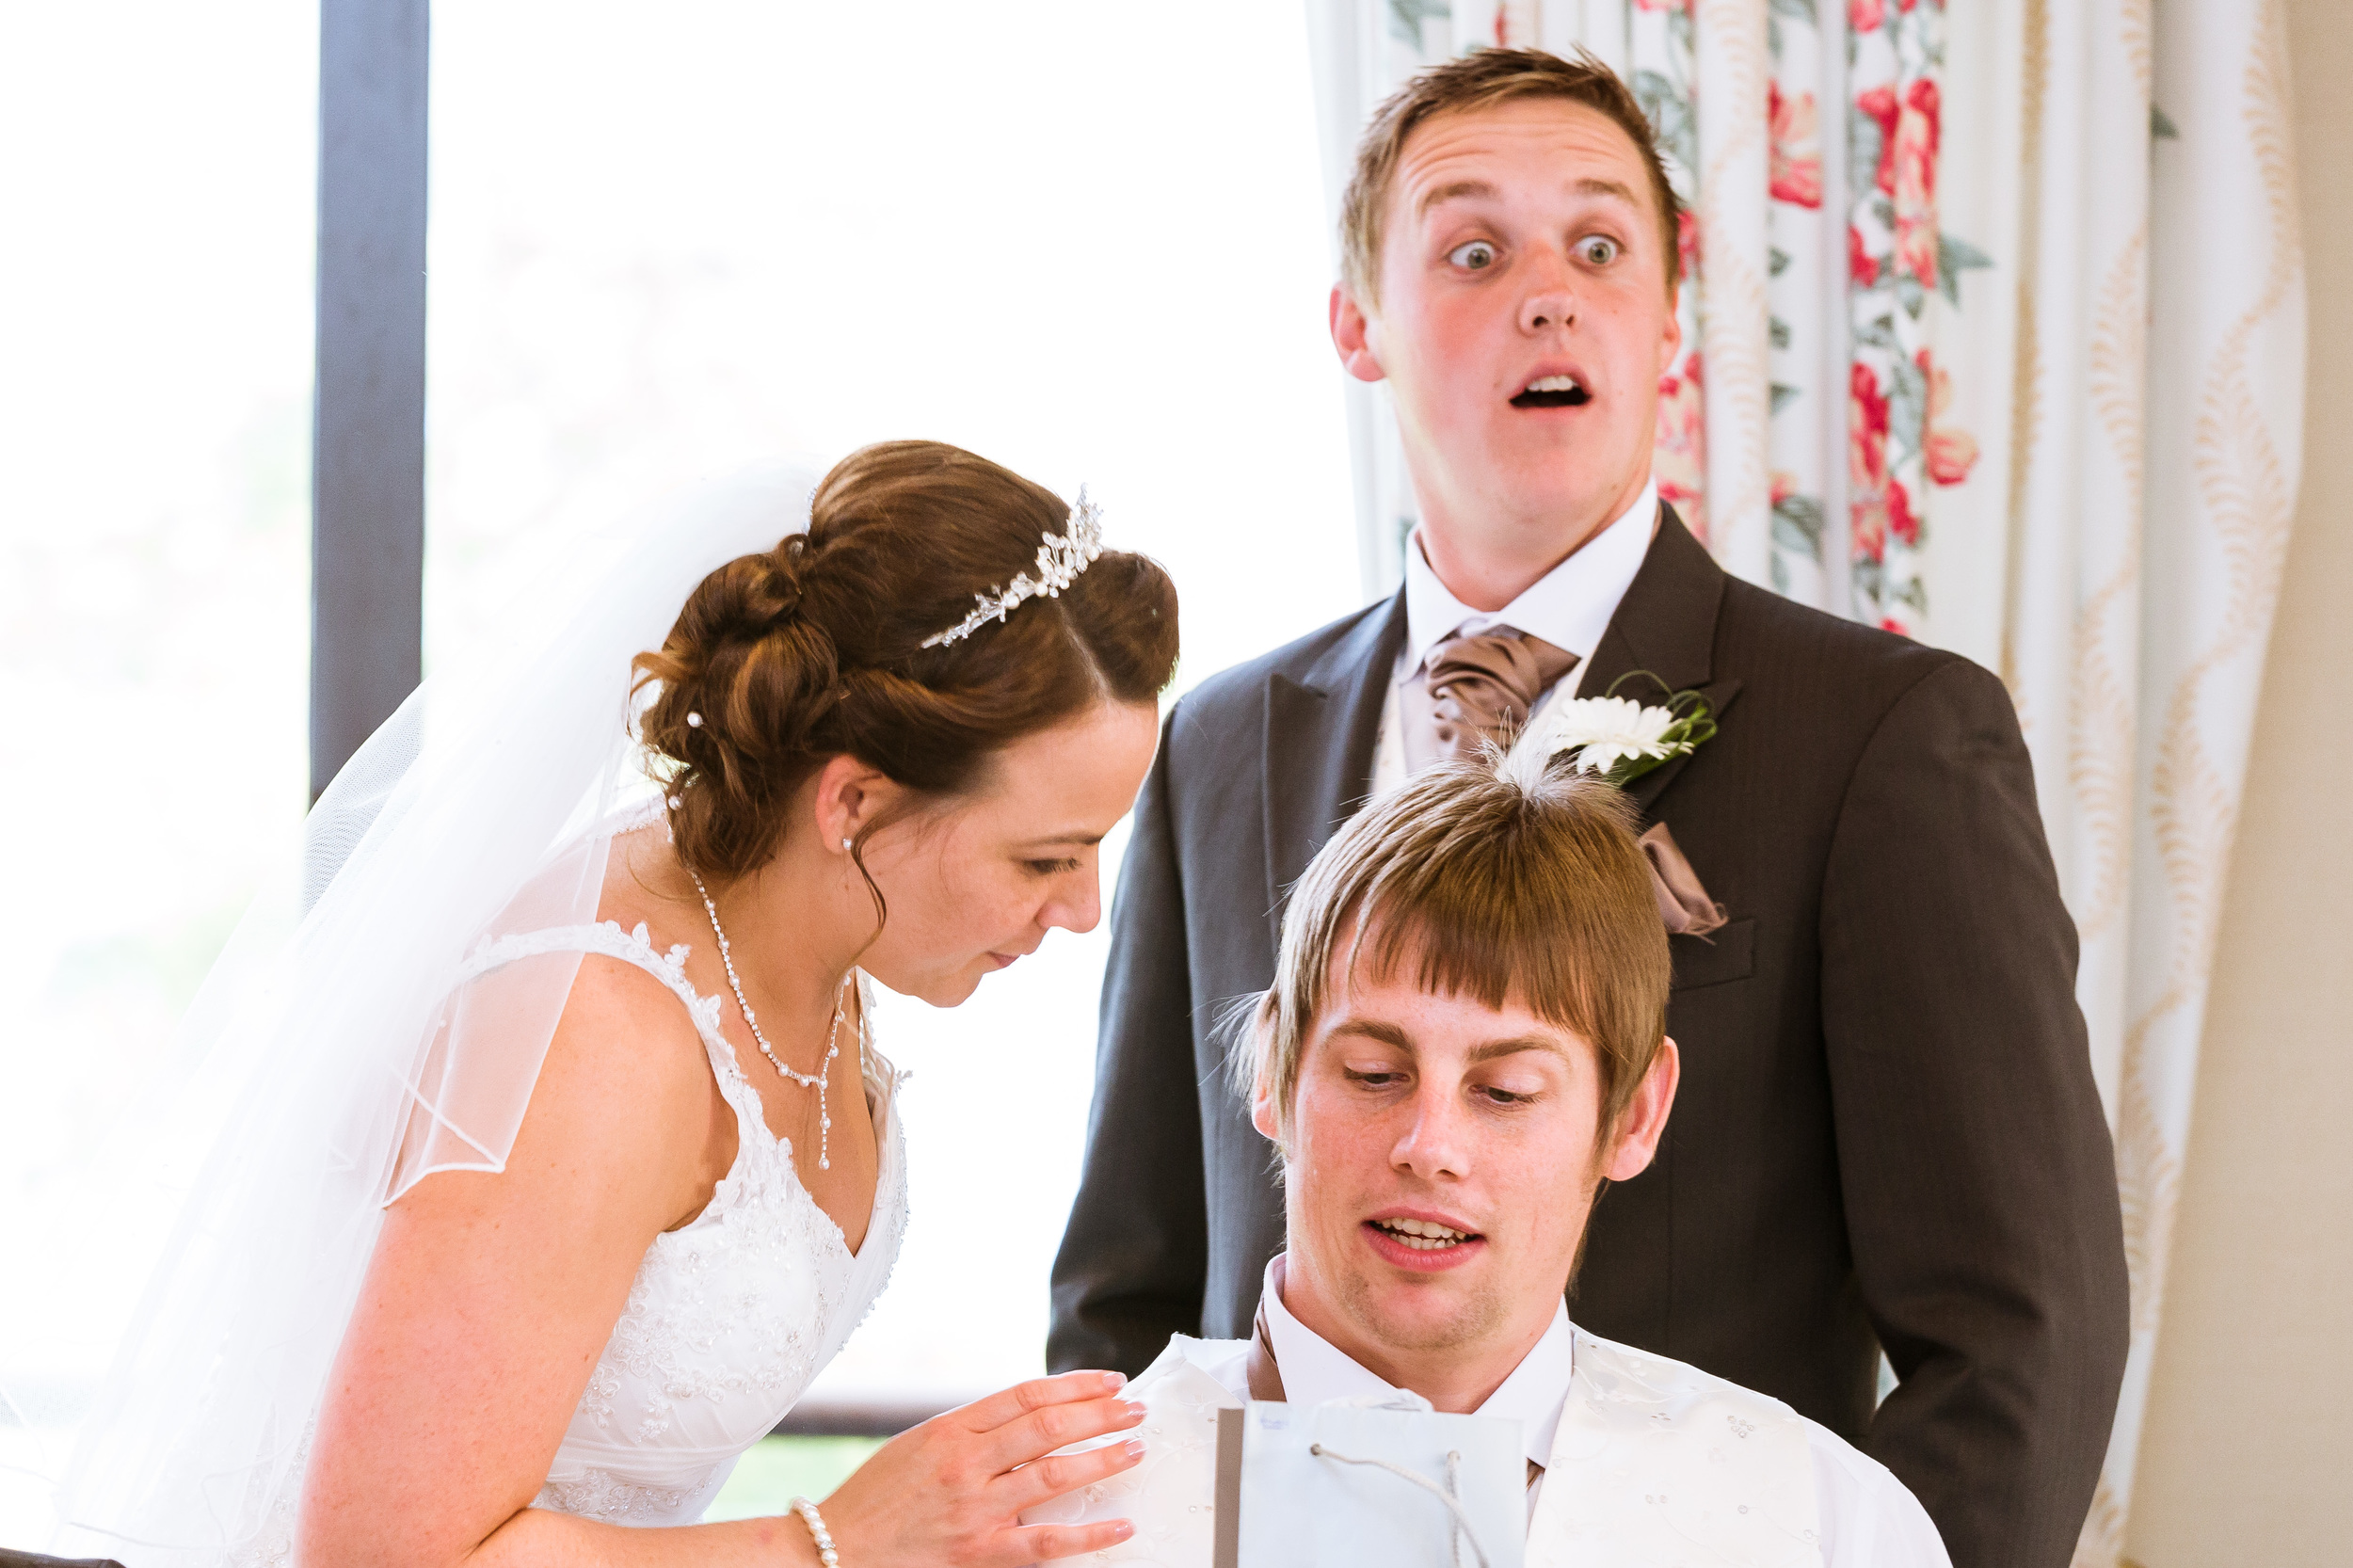 Sarah is passing out gifts too the grooms man, gavin one of the ushers is shocked to see what it was